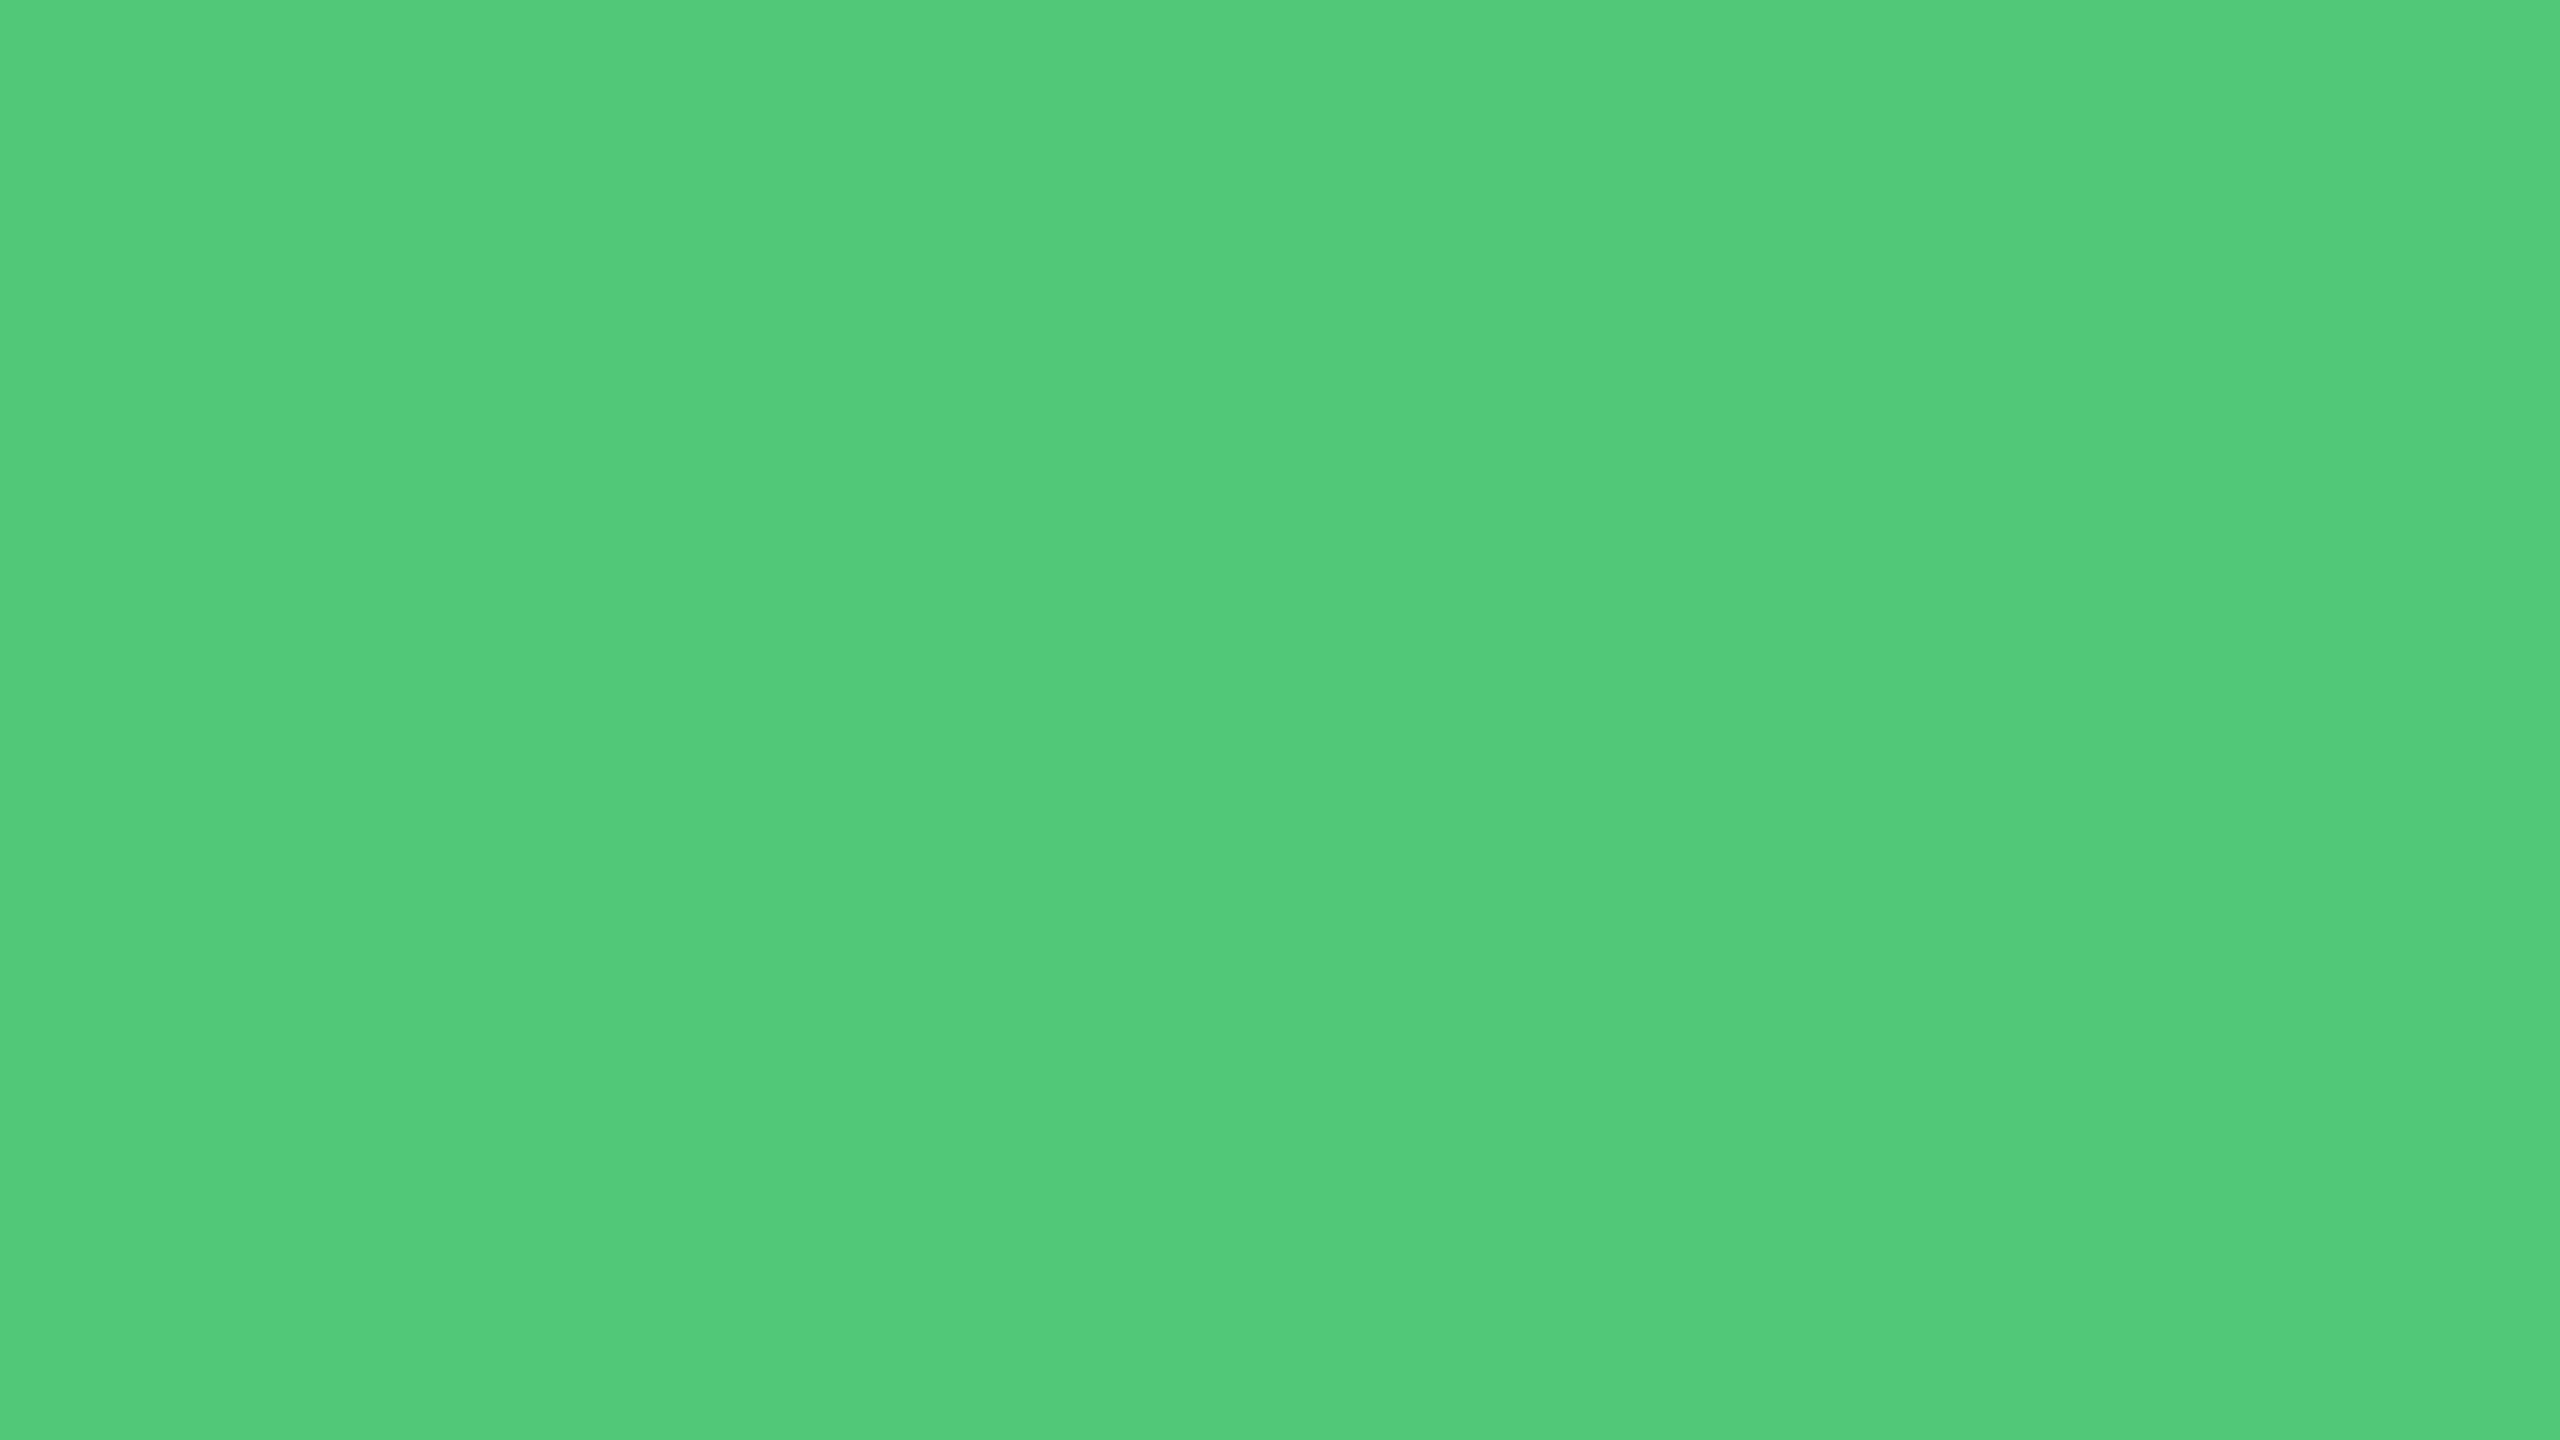 2560x1440 Emerald Solid Color Background